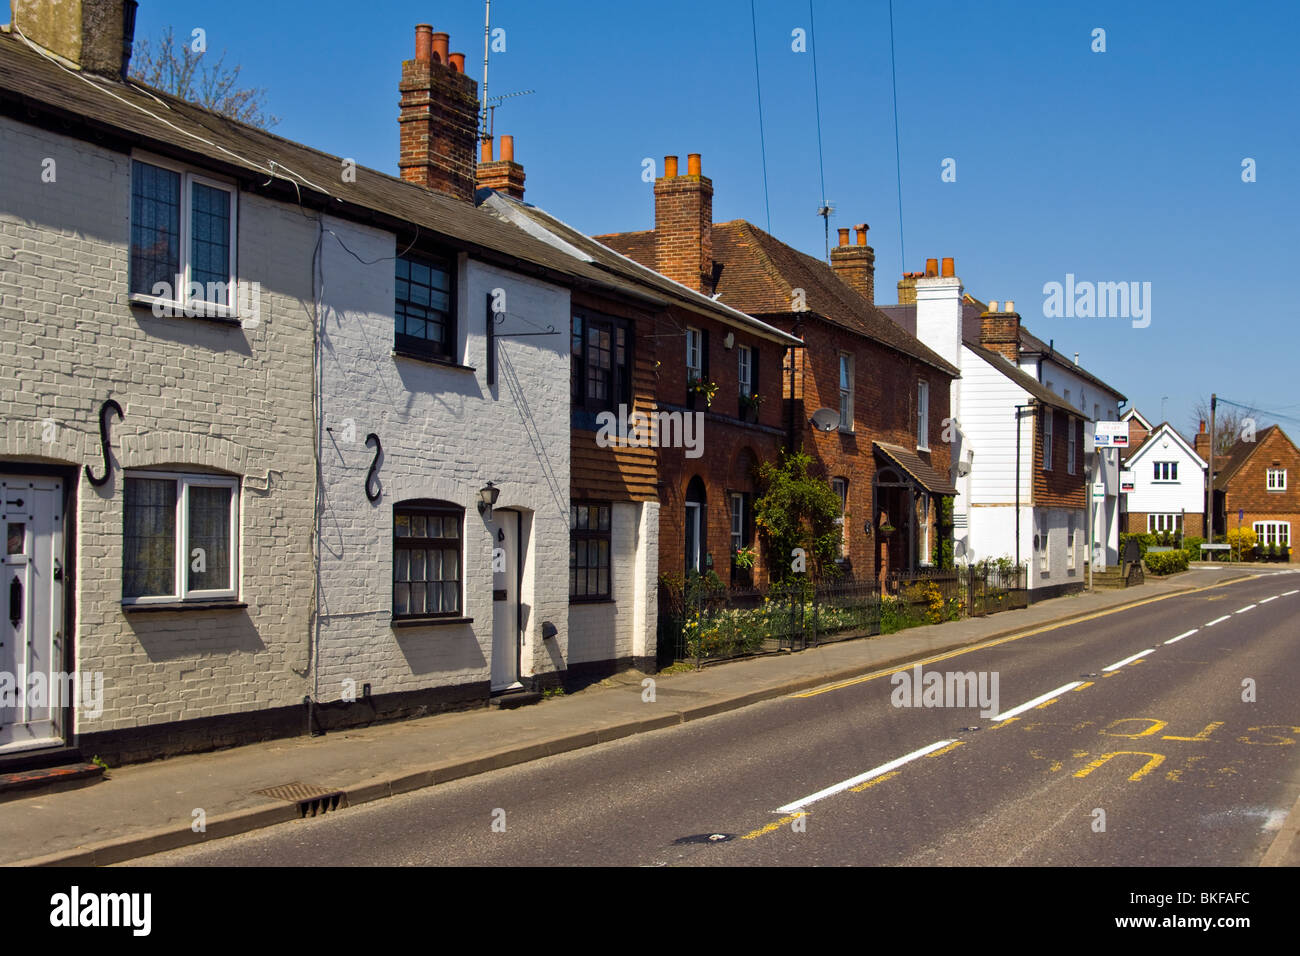 Terraced Cottages On The A25 at Westerham Kent England - Stock Image